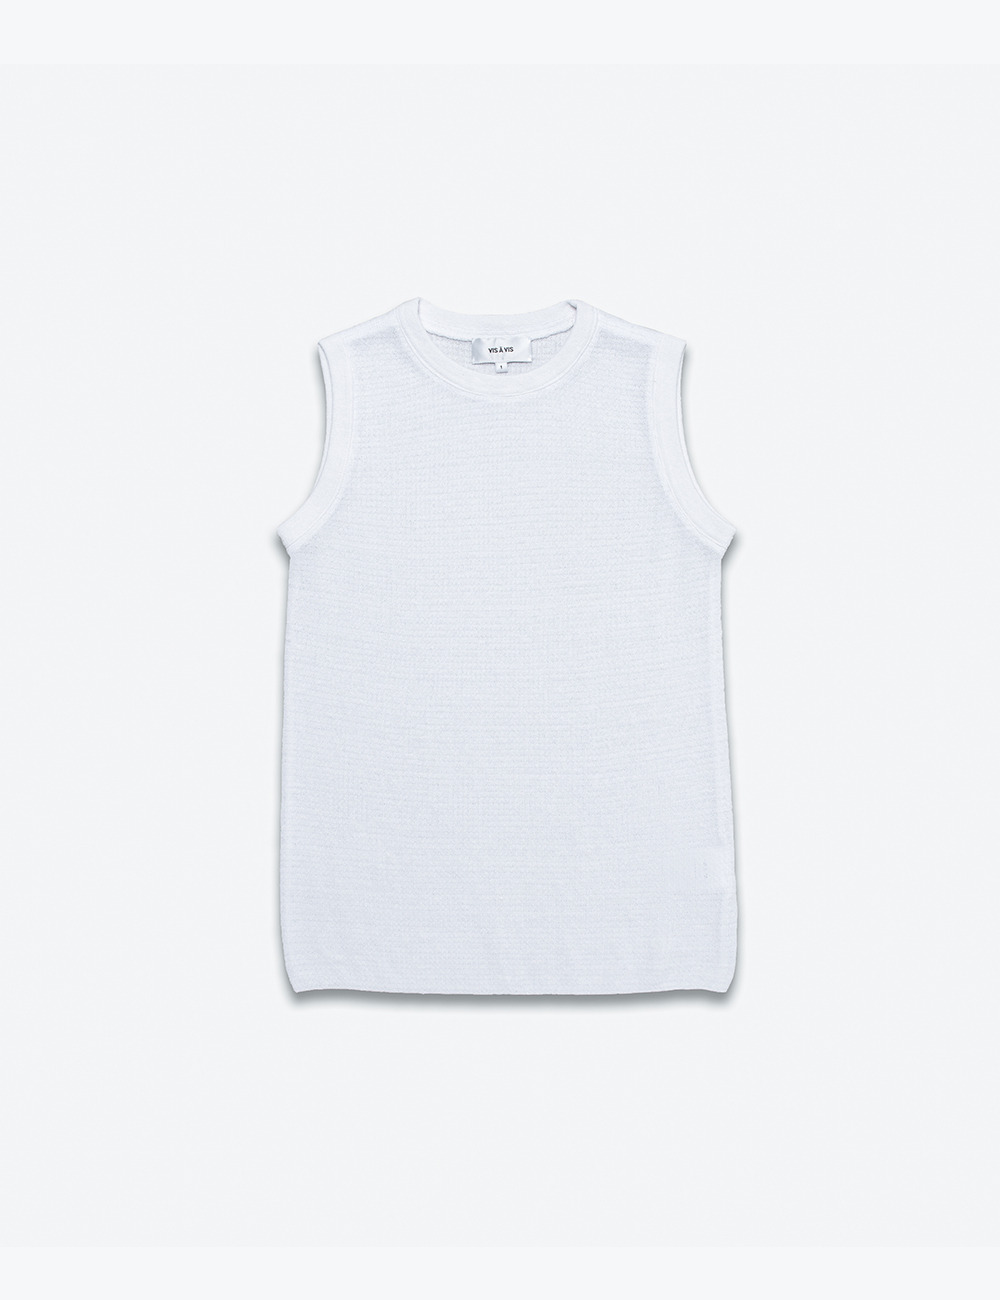 MUSCLE TANK TOP (WHITE)